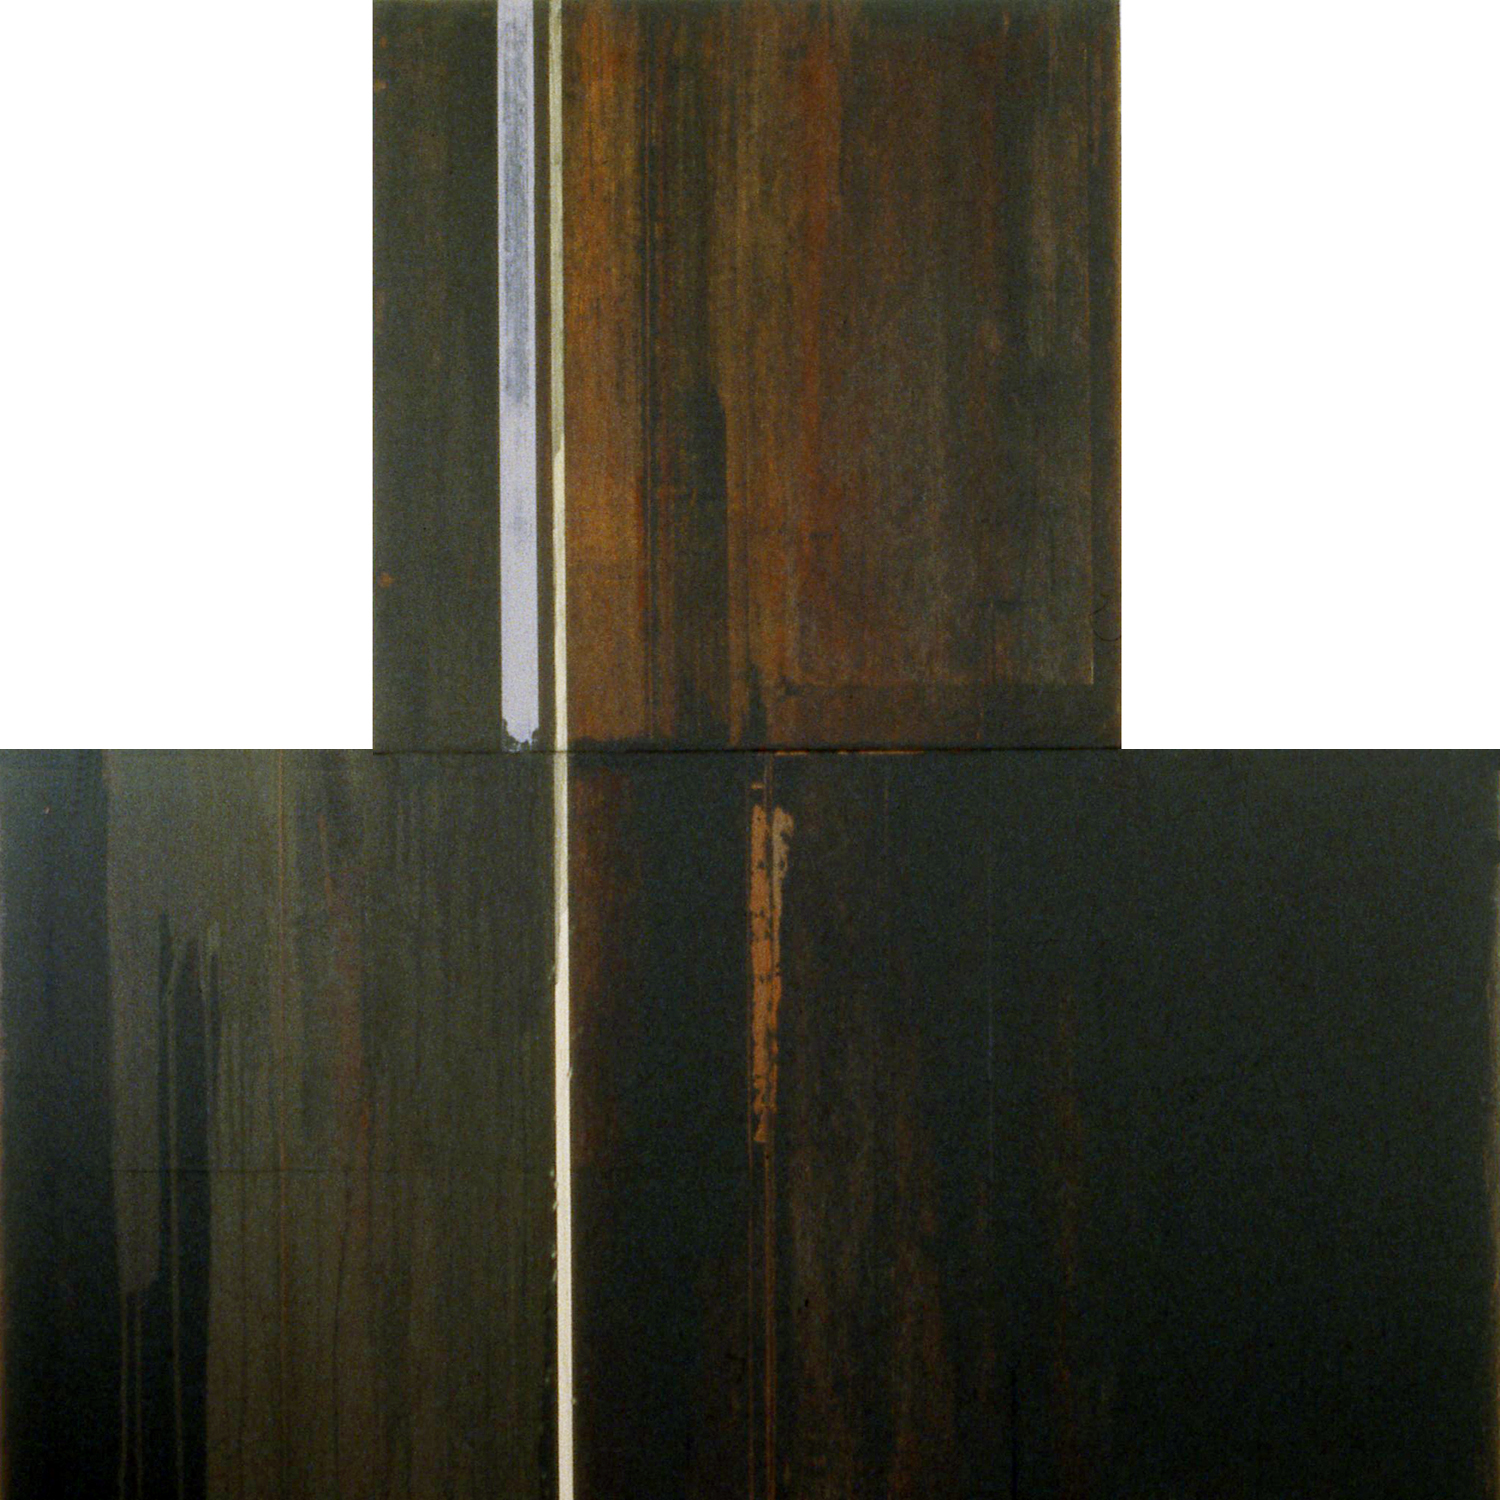 Divided Square 51, 1989, Acrylic on canvas over panels, 48 x 48 inches.